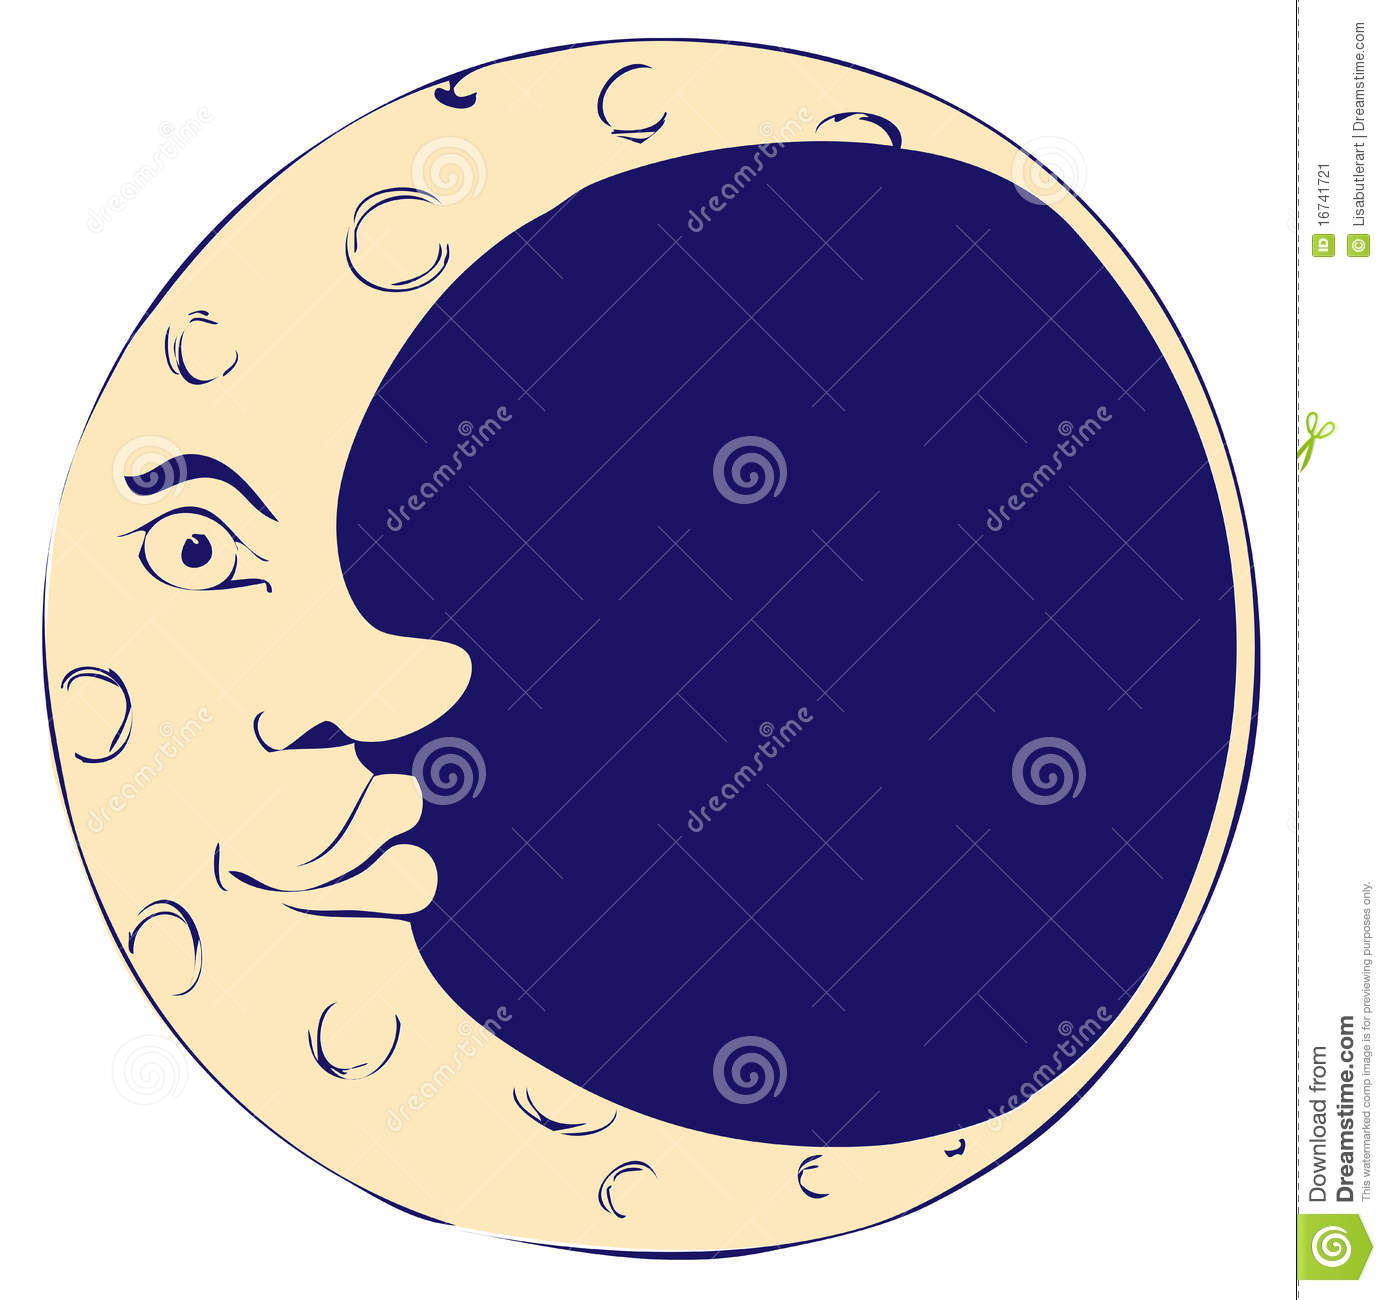 Free Download Clipart Man In The Moon.